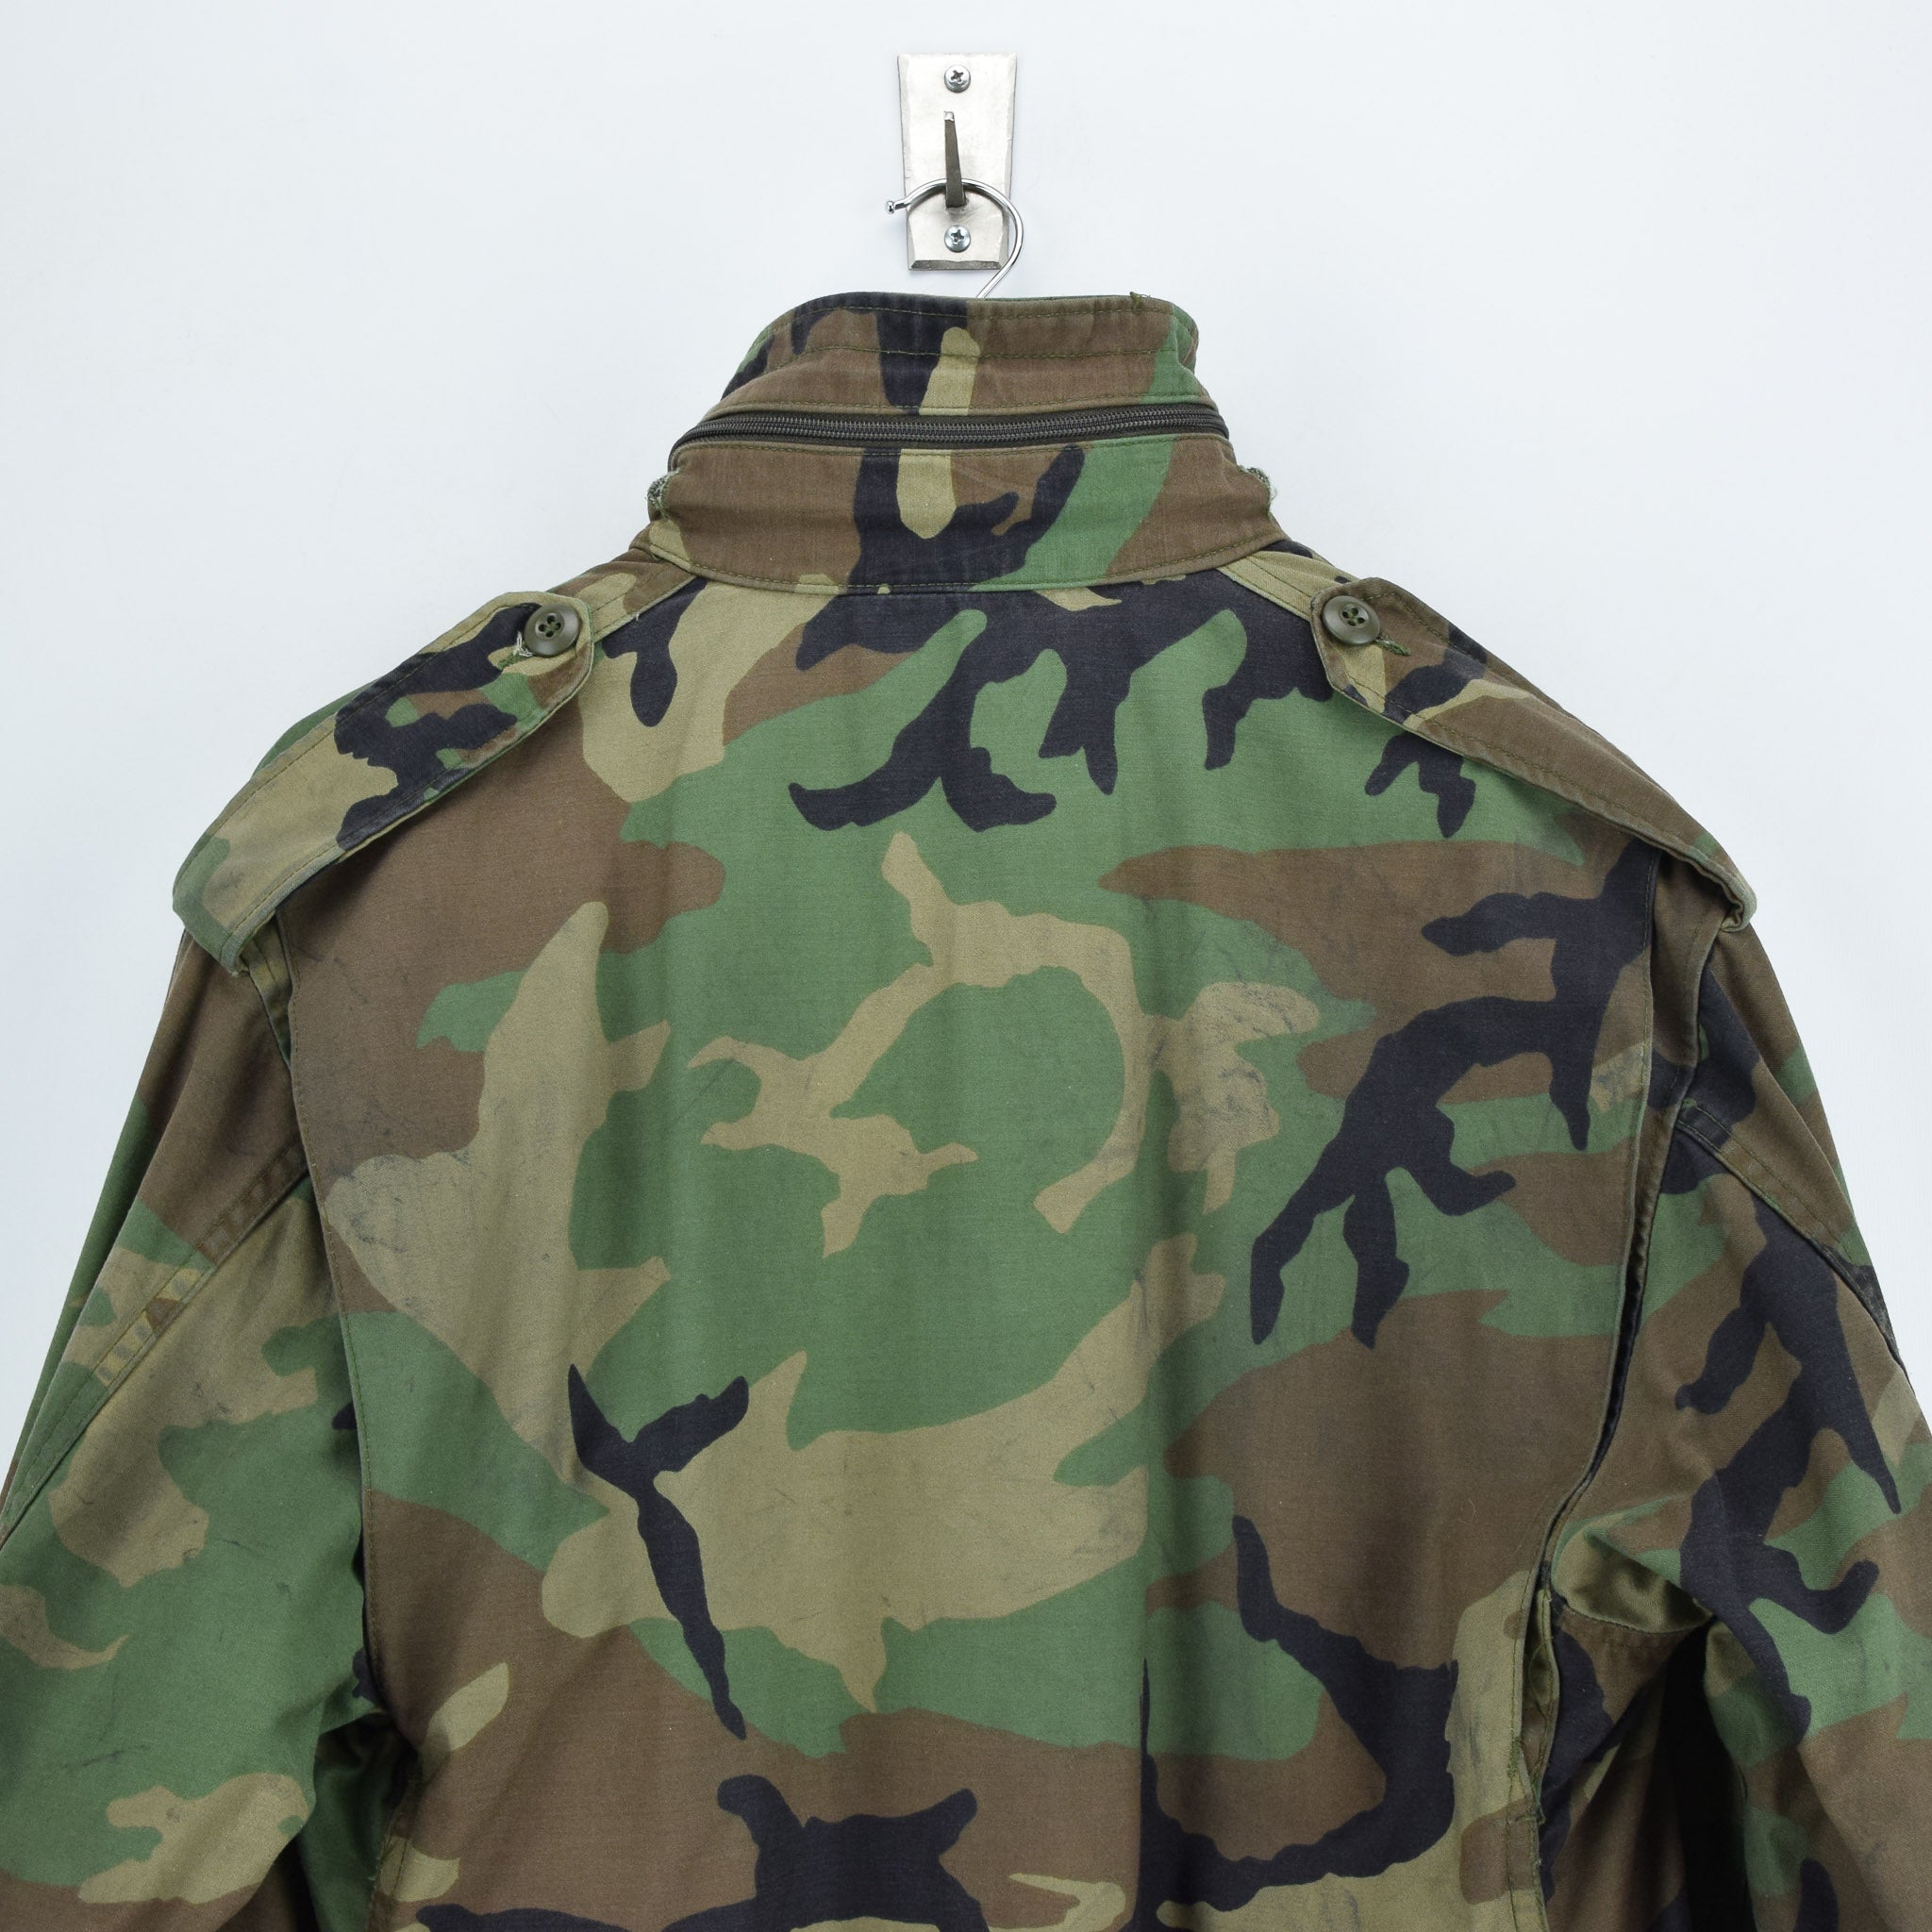 Vintage 80s M-65 Woodland Camouflage Field Coat Alpha Industries Army Jacket M shoulders